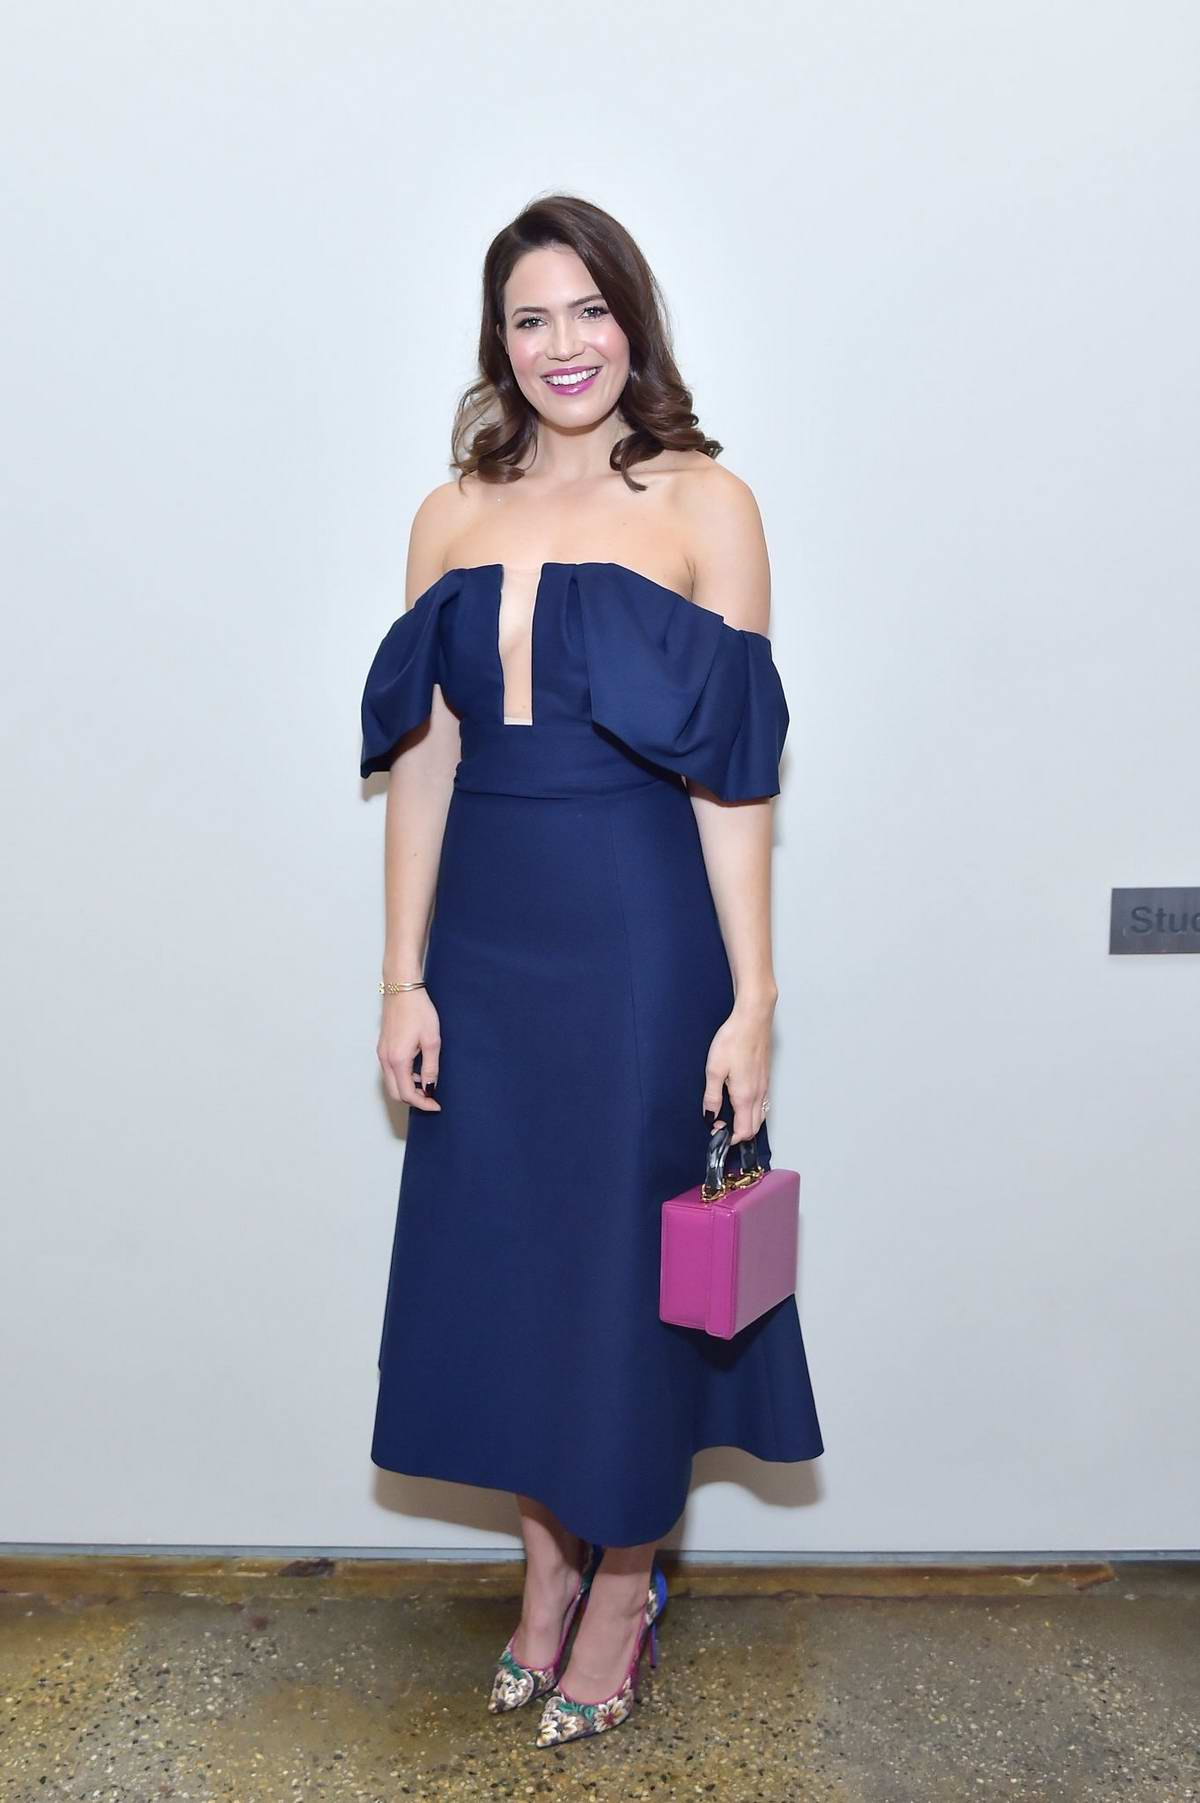 Mandy Moore attends The Hollywood Reporter's Power 100 Women In Entertainment in Los Angeles